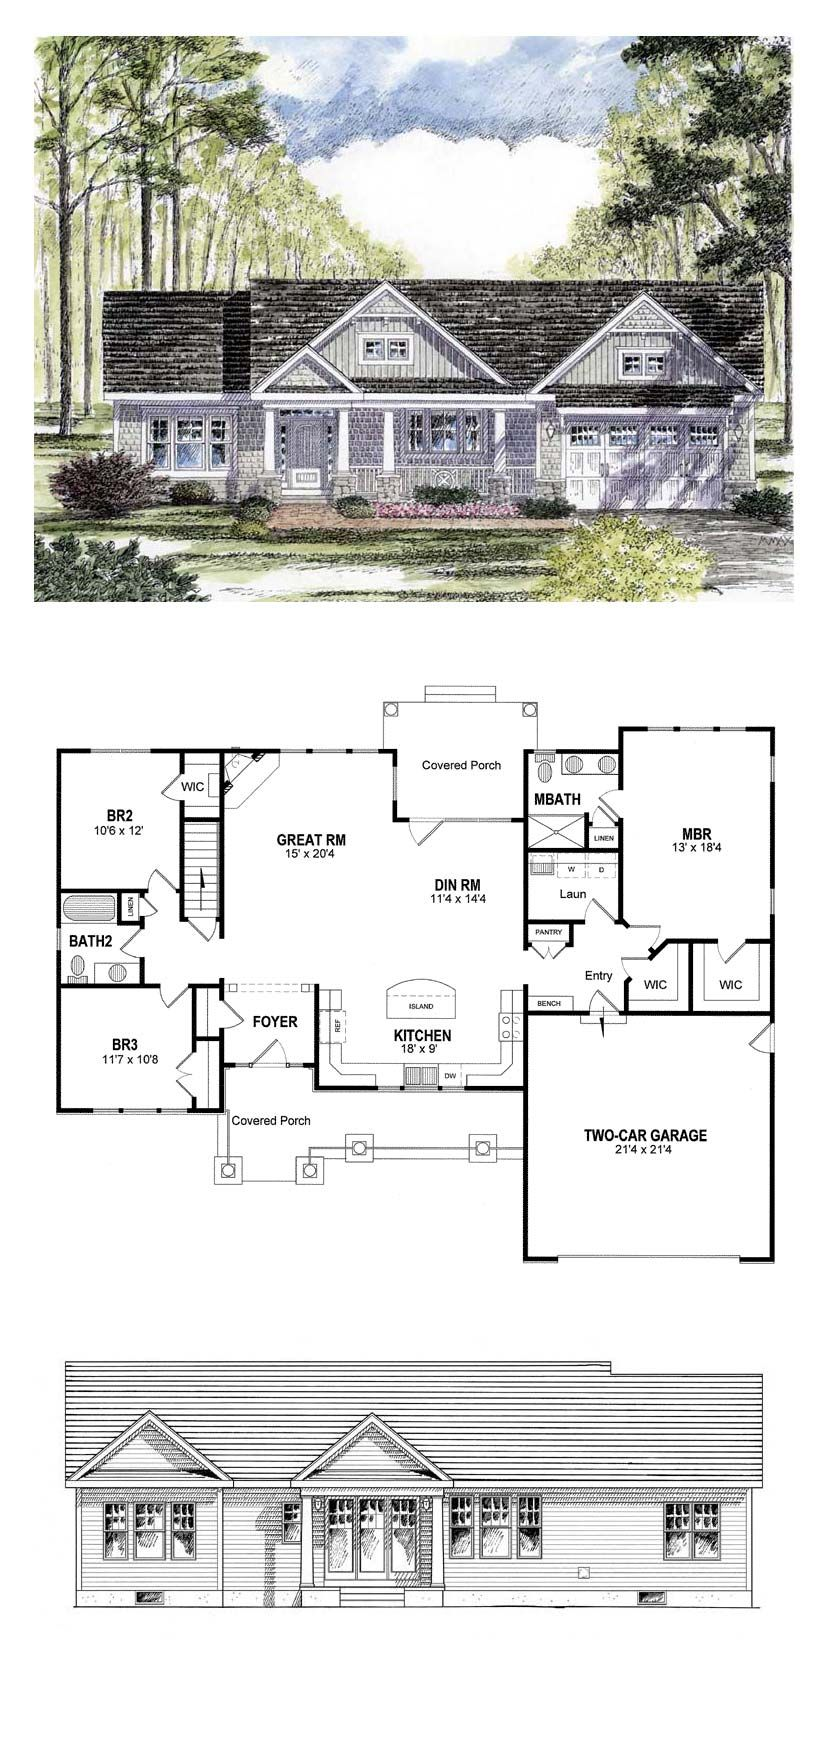 Floor Plans For An In Law Apartment Addition On Your Home Google Search Studio Apartment Floor Plans Apartment Floor Plans Apartment Layout